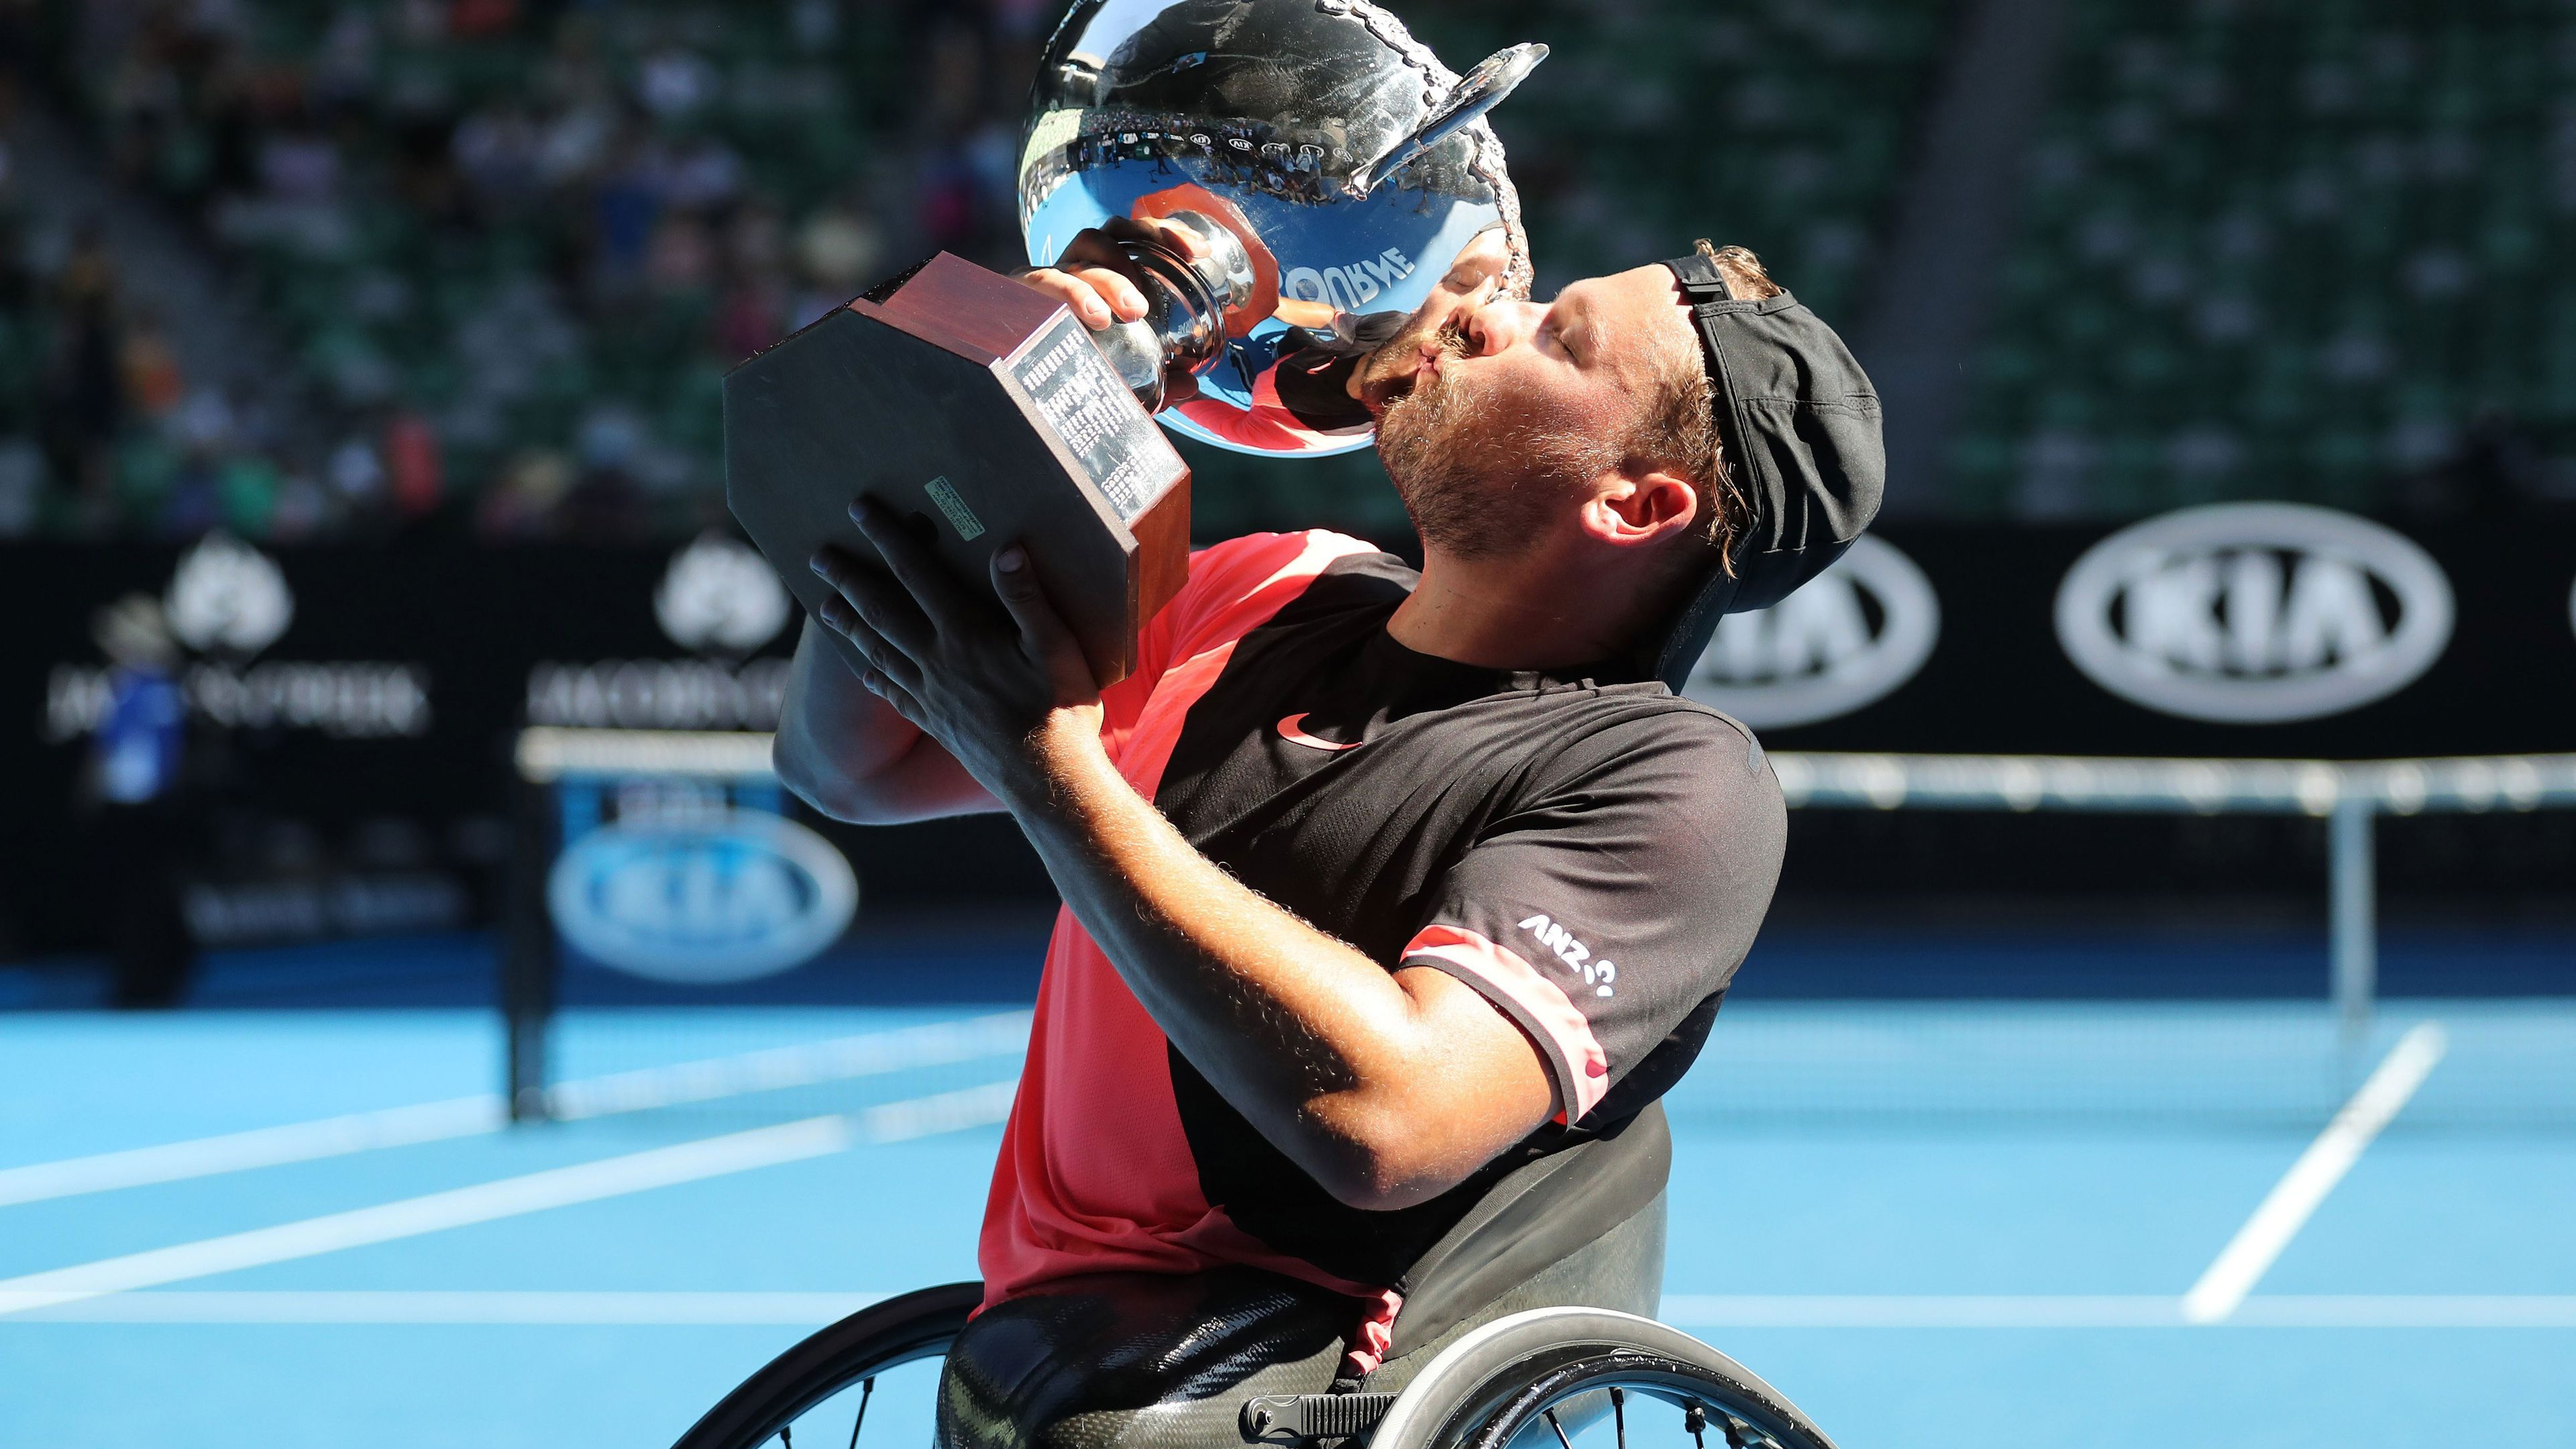 Dylan Alcott recalls incredible Australian Open win with cellulitis infection